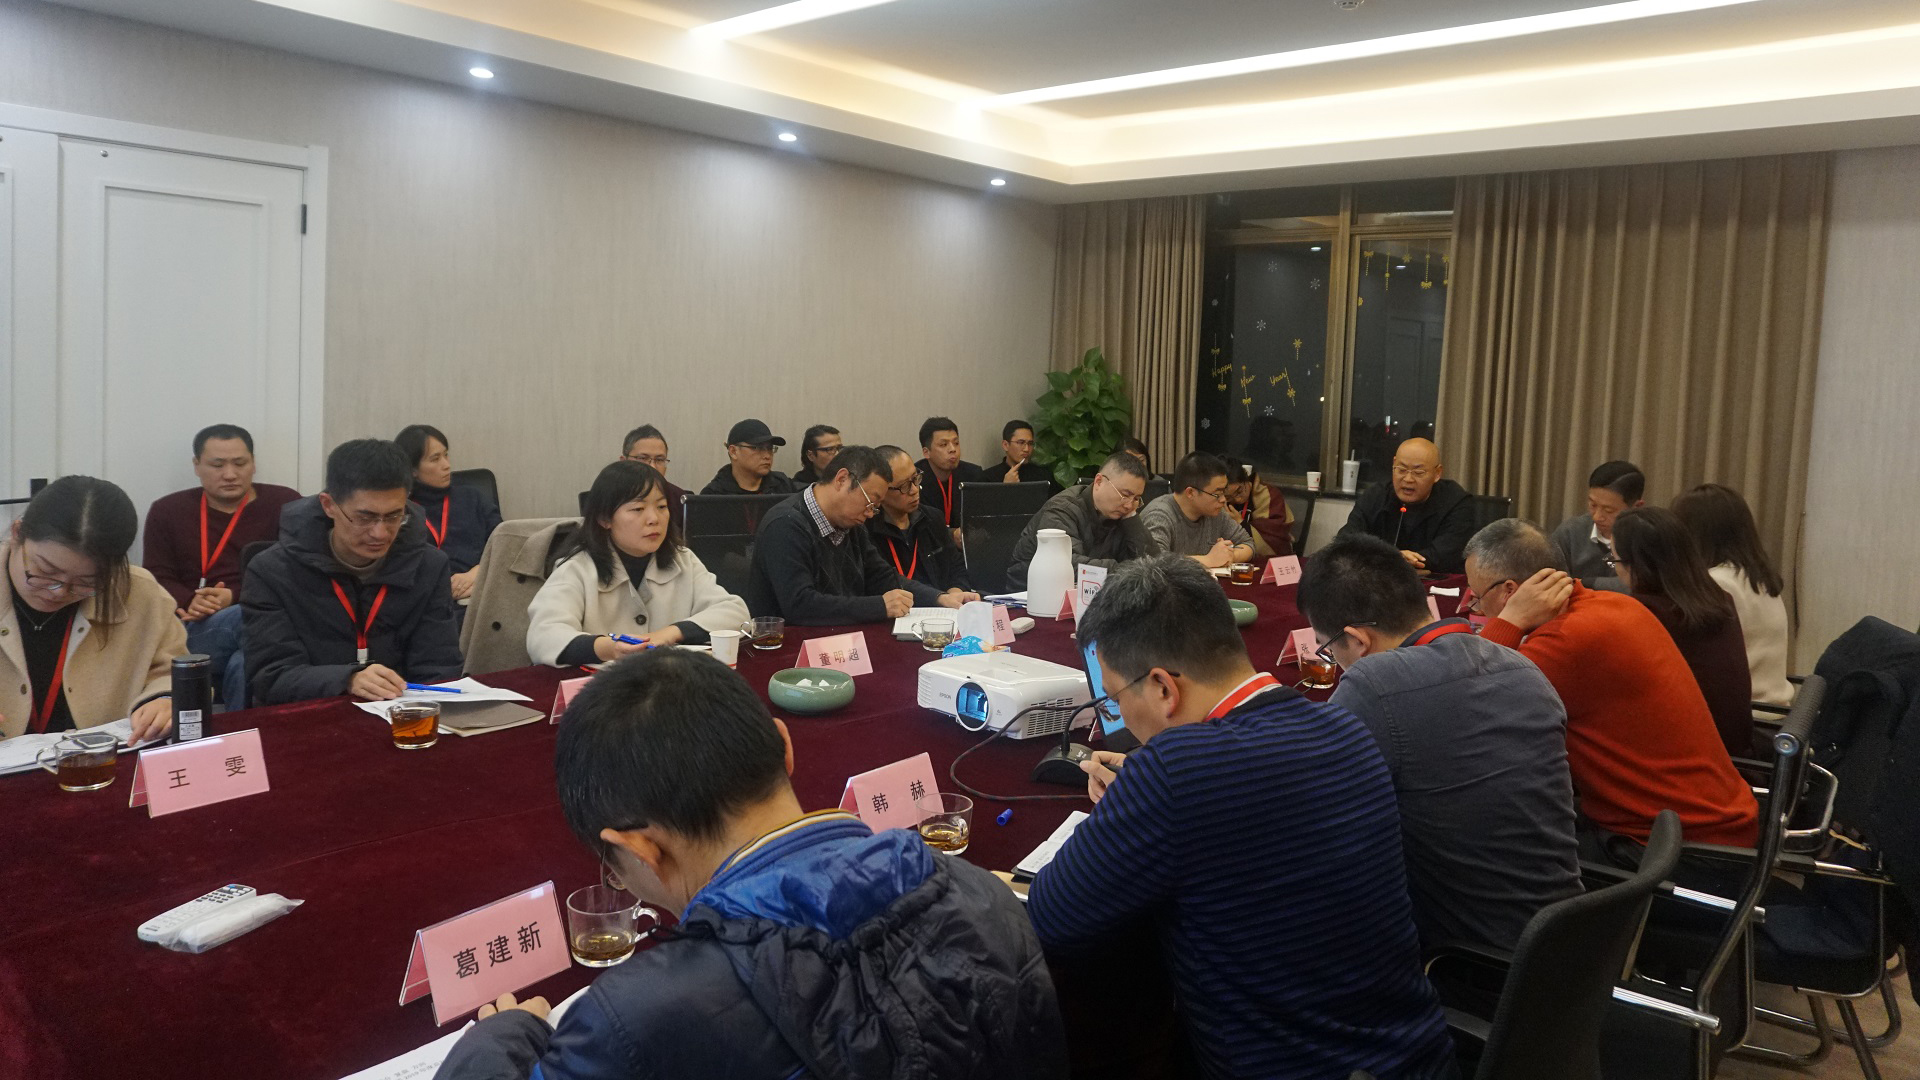 Integration Review Direction | Chengbang Design Group 2019 Annual Work Summary Meeting Was Successfully Concluded